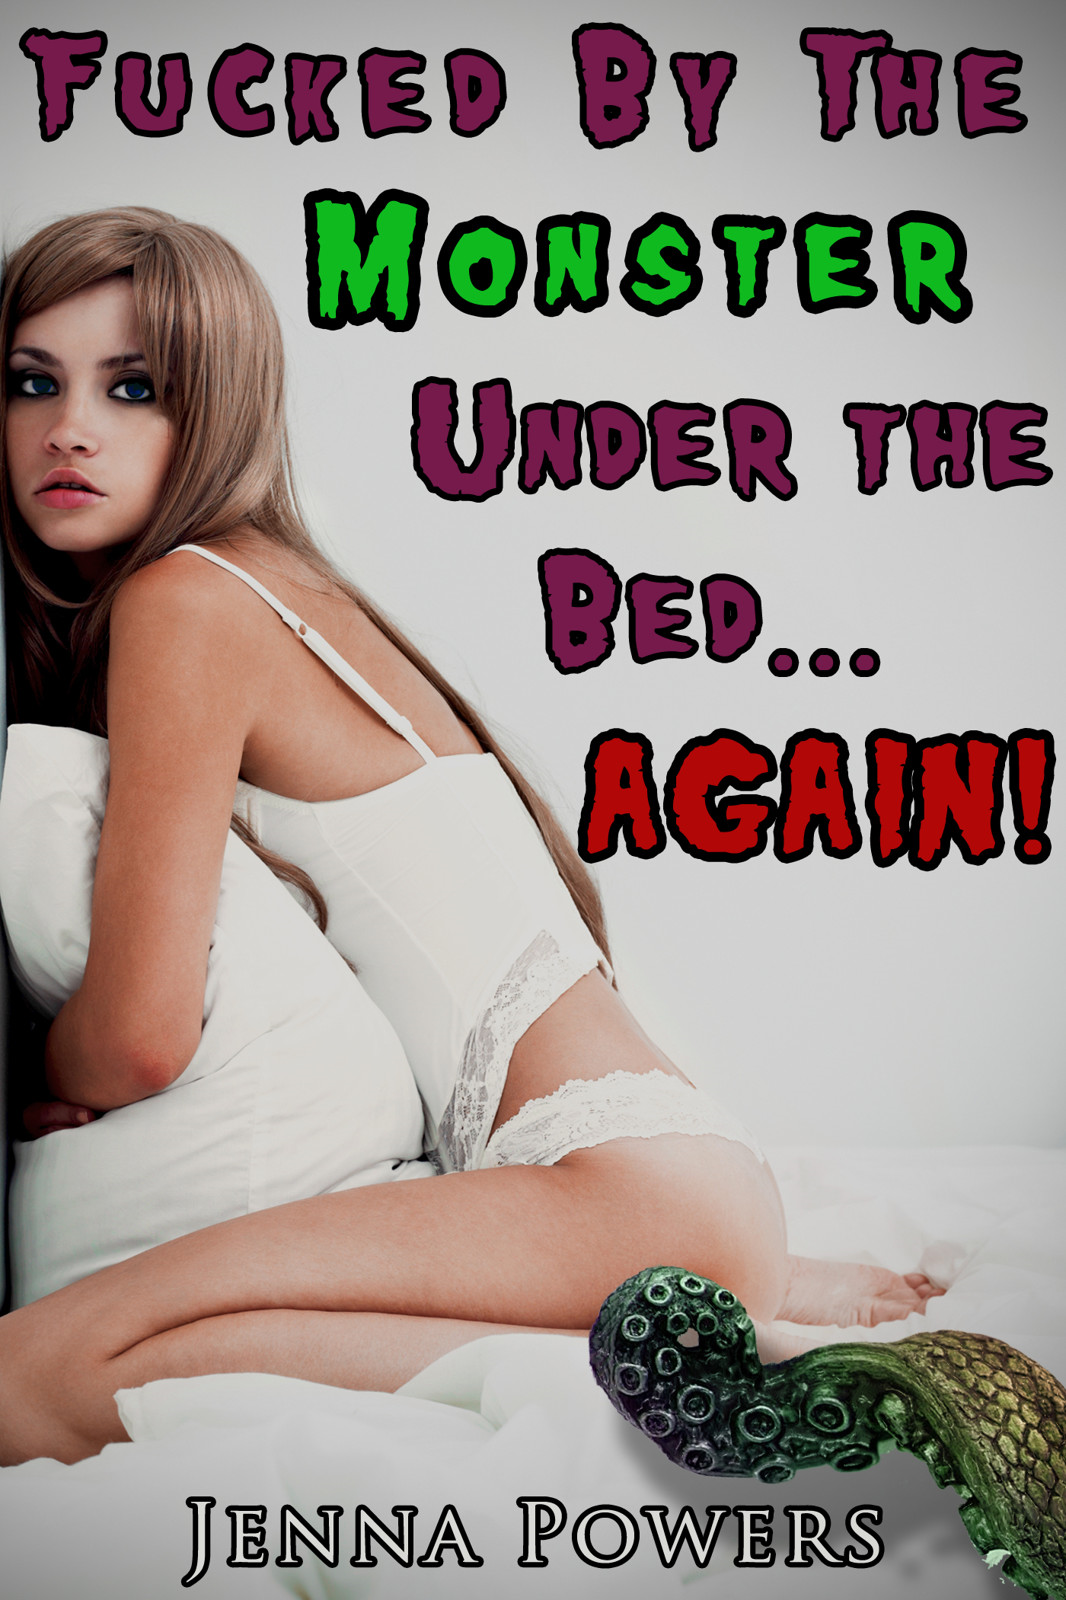 Fucked by the Monster Under the Bed Again!